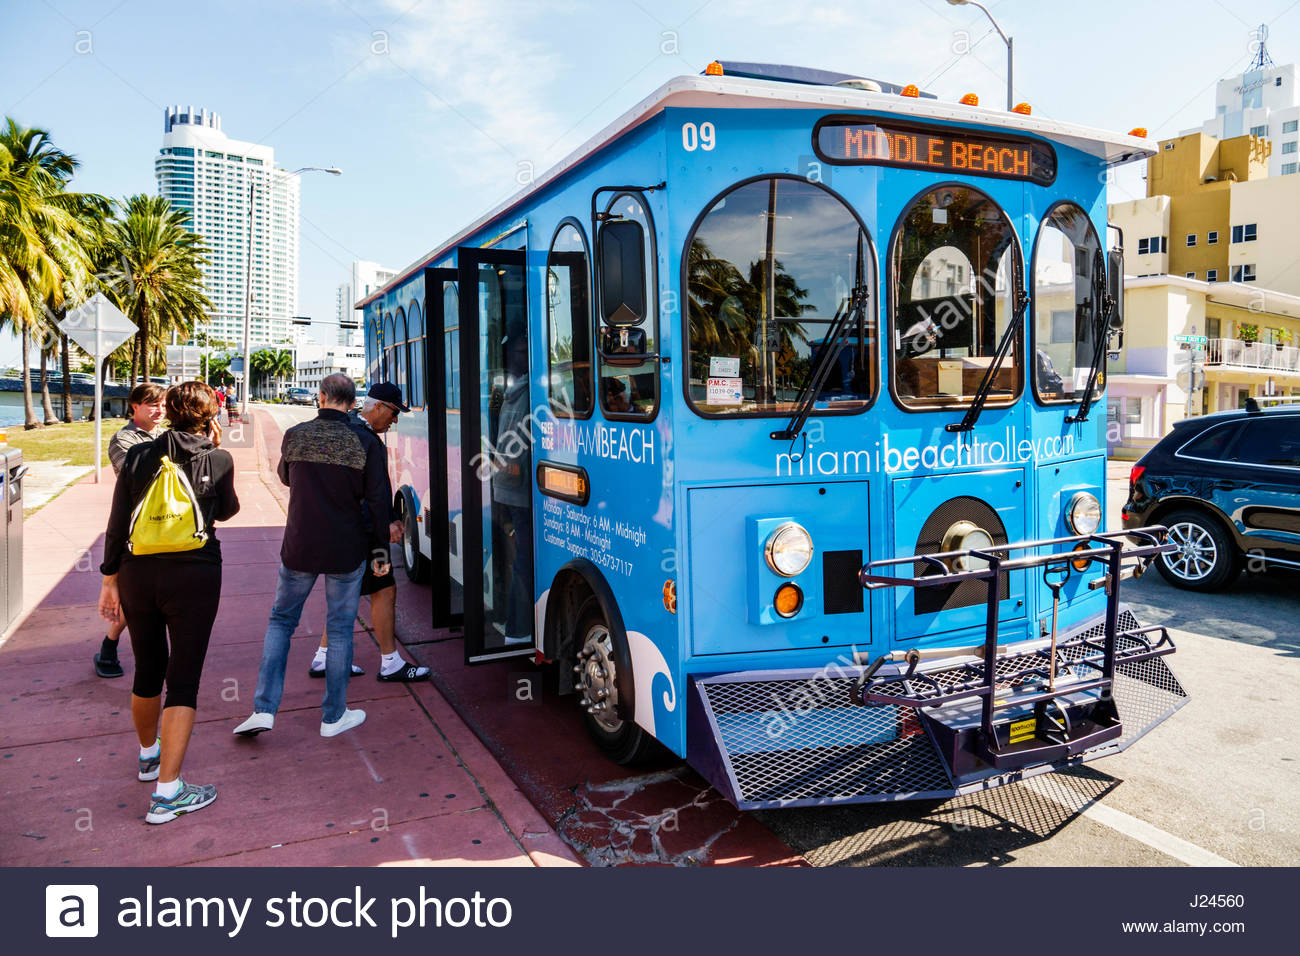 Miami Beach Florida Indian Creek Drive Middle Beach Loop Free Trolley Public Transportation Mass Transit Bus Stop Boarding Man Woman Passengers